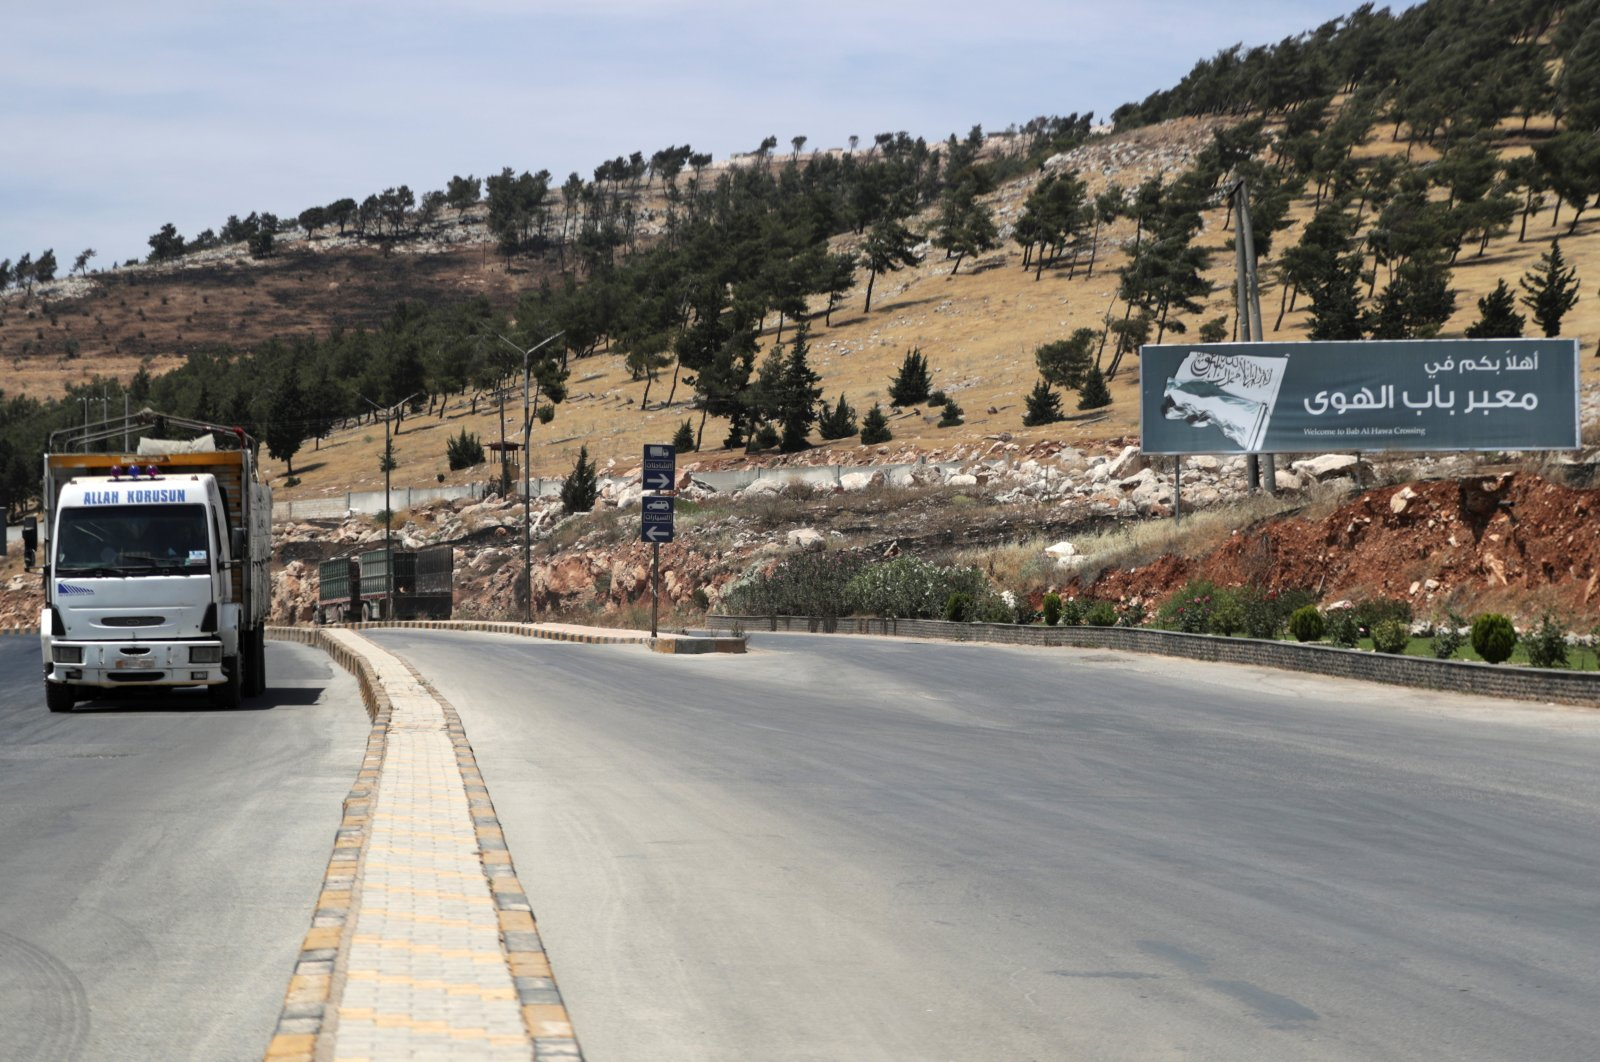 """A vehicle drives past a road sign that reads """"Welcome to Bab al-Hawa crossing,"""" Bab al-Hawa crossing at the Syrian-Turkish border, in Idlib governorate, Syria, June 10, 2021. (Reuters Photo)"""